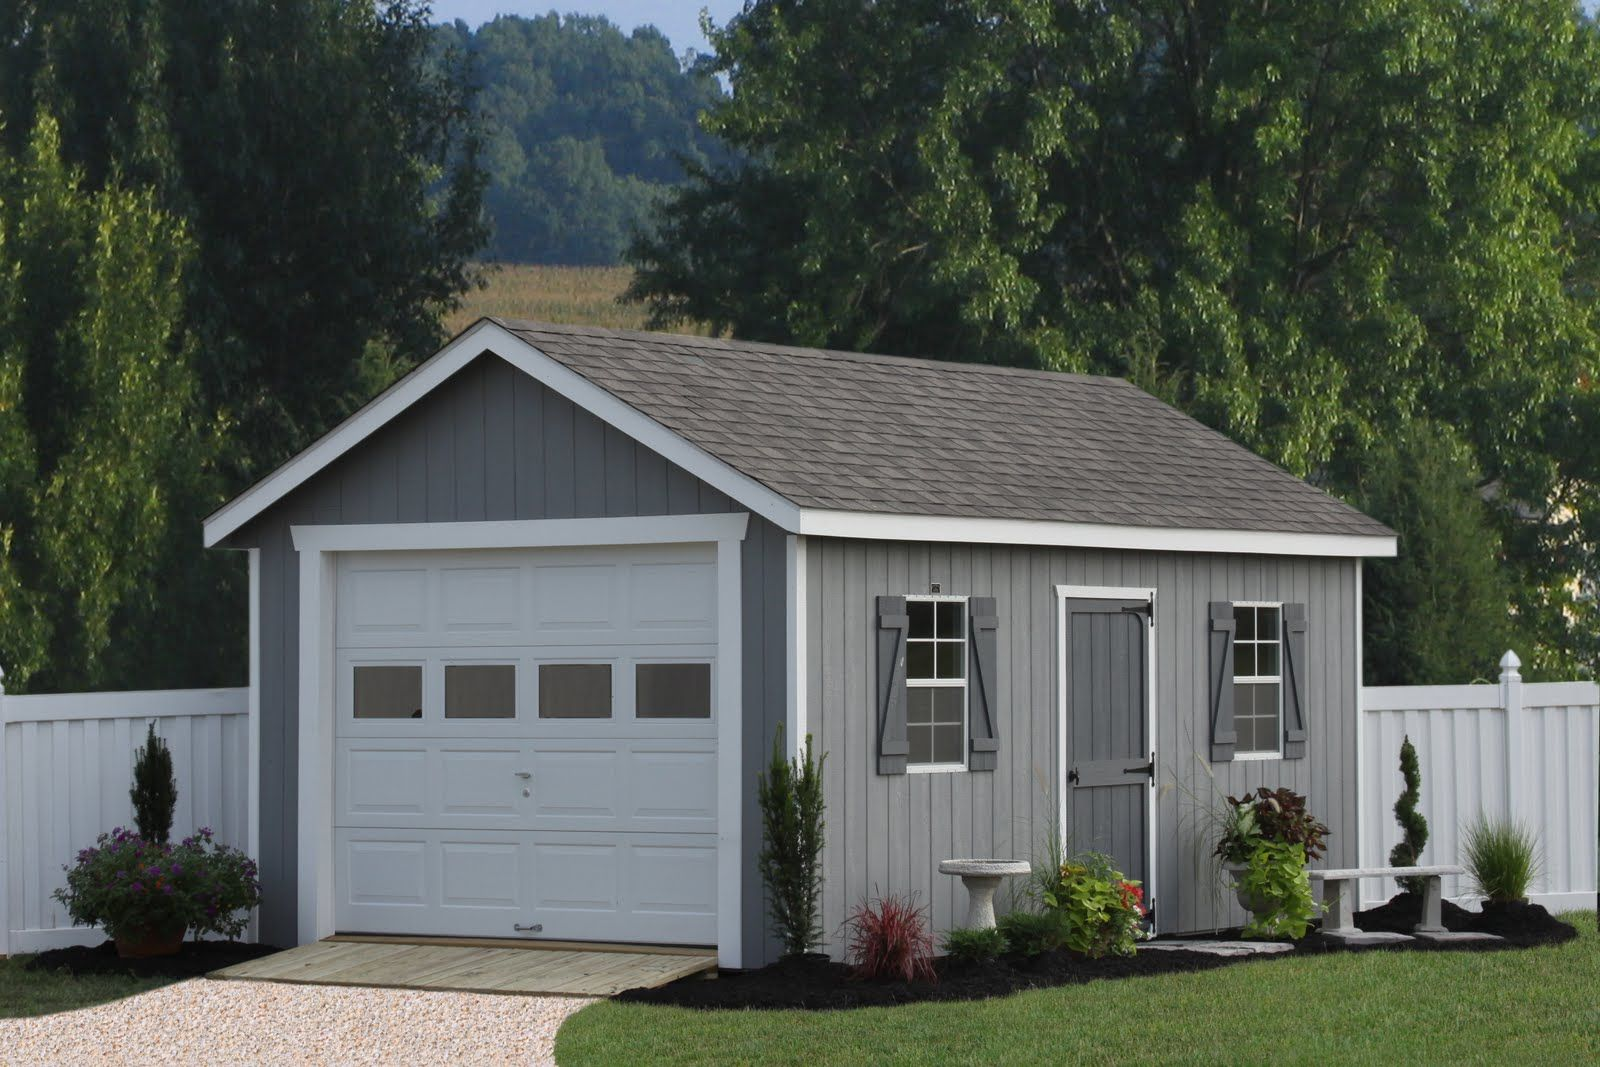 Add on garage plans 12x20 classic one car garage for Small sheds for sale